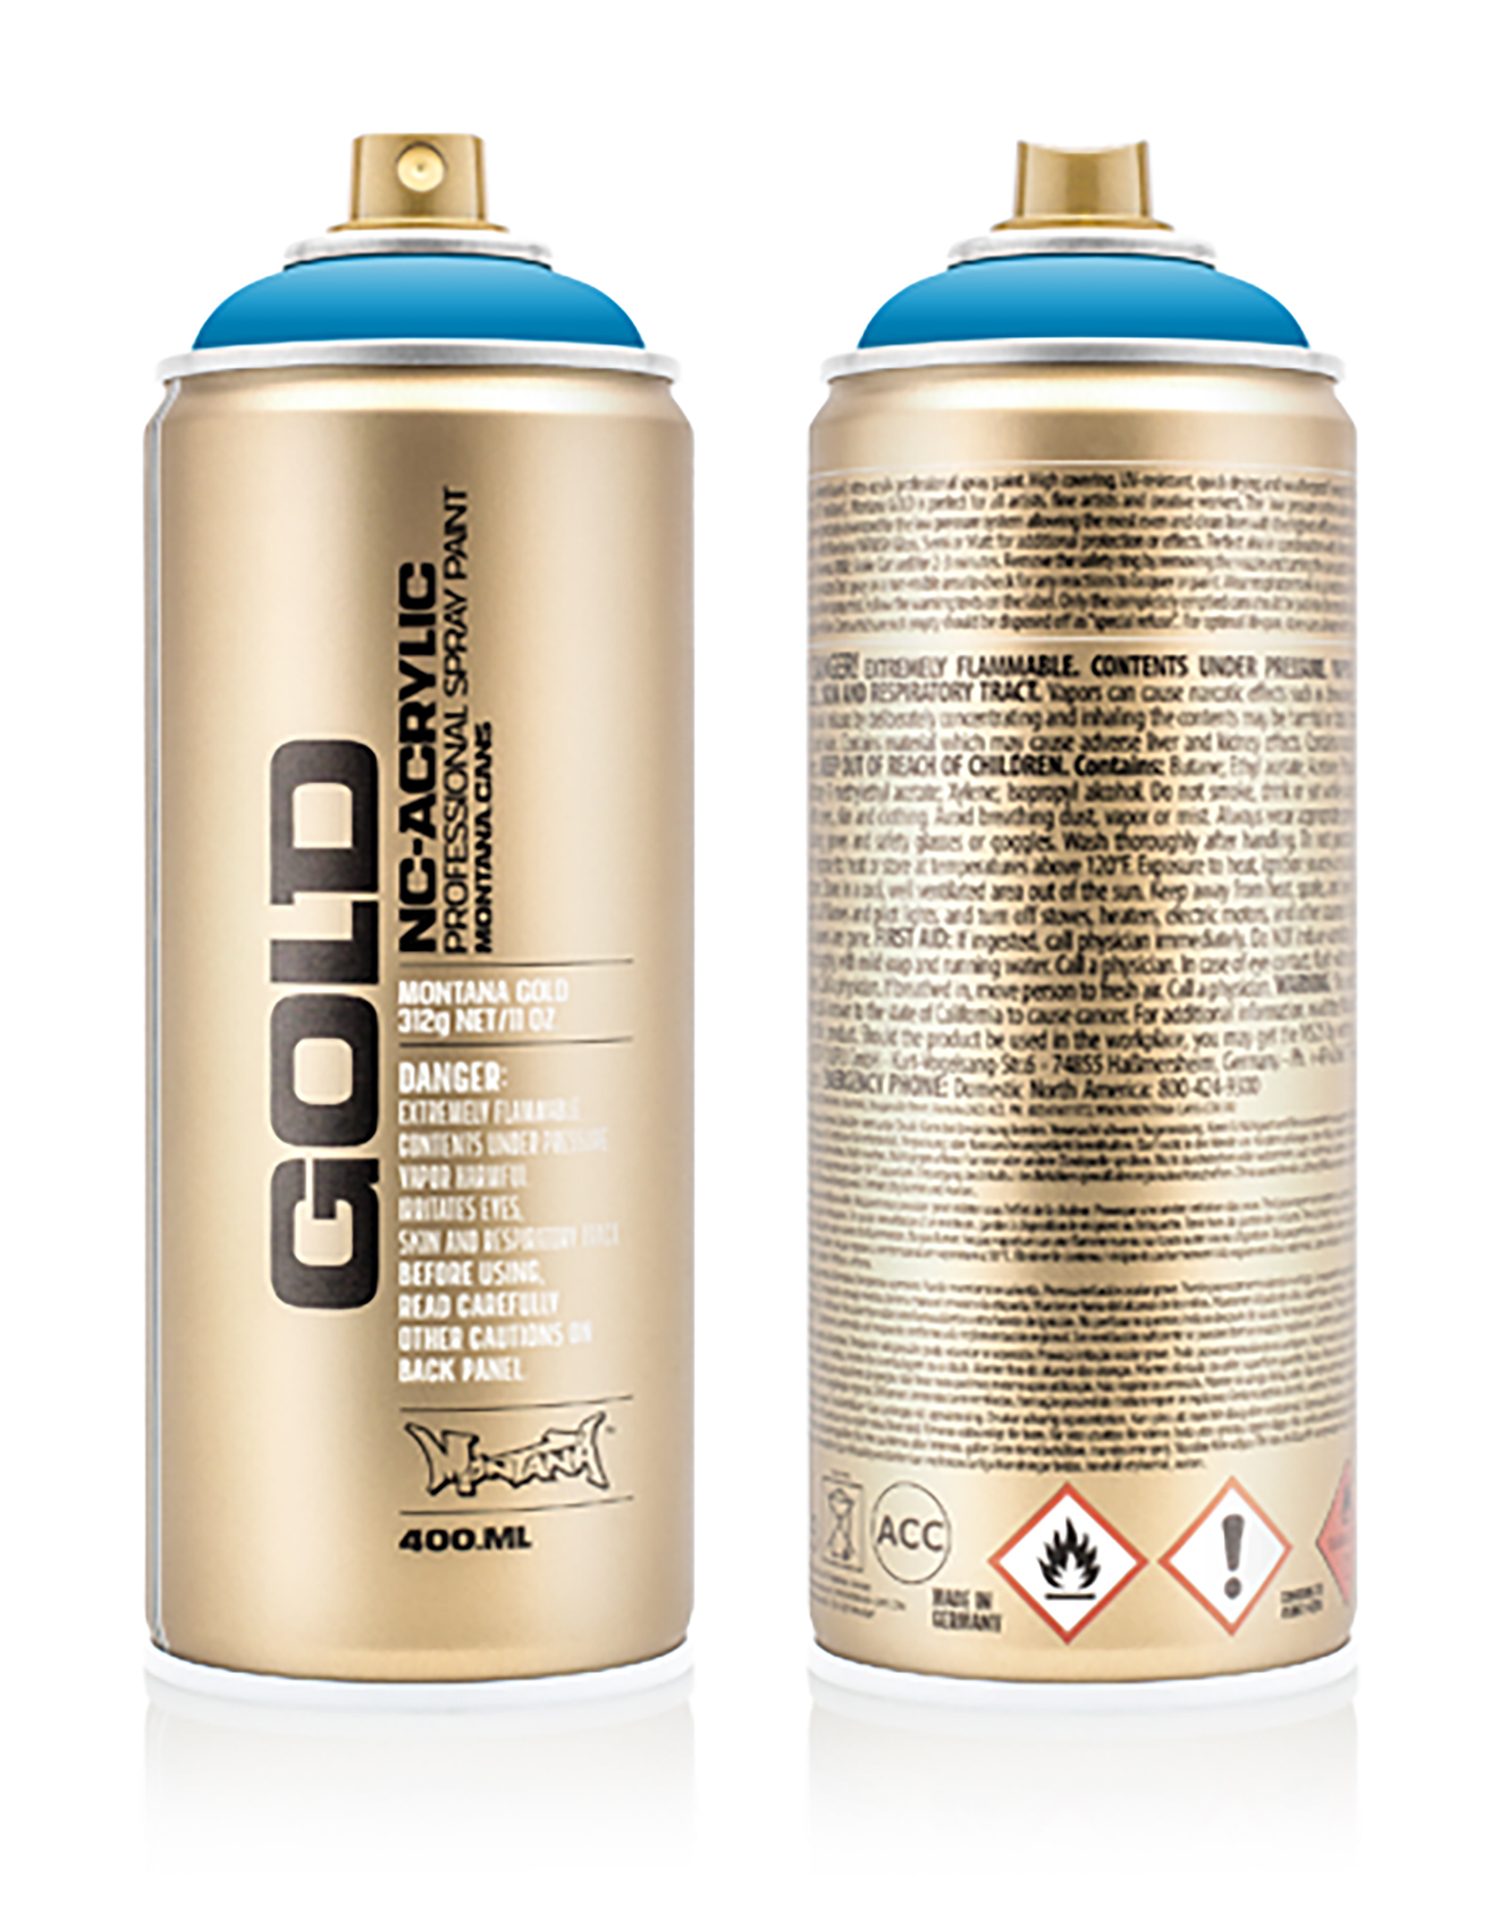 MONTANA-GOLD-SPRAY-400ML-G-5050